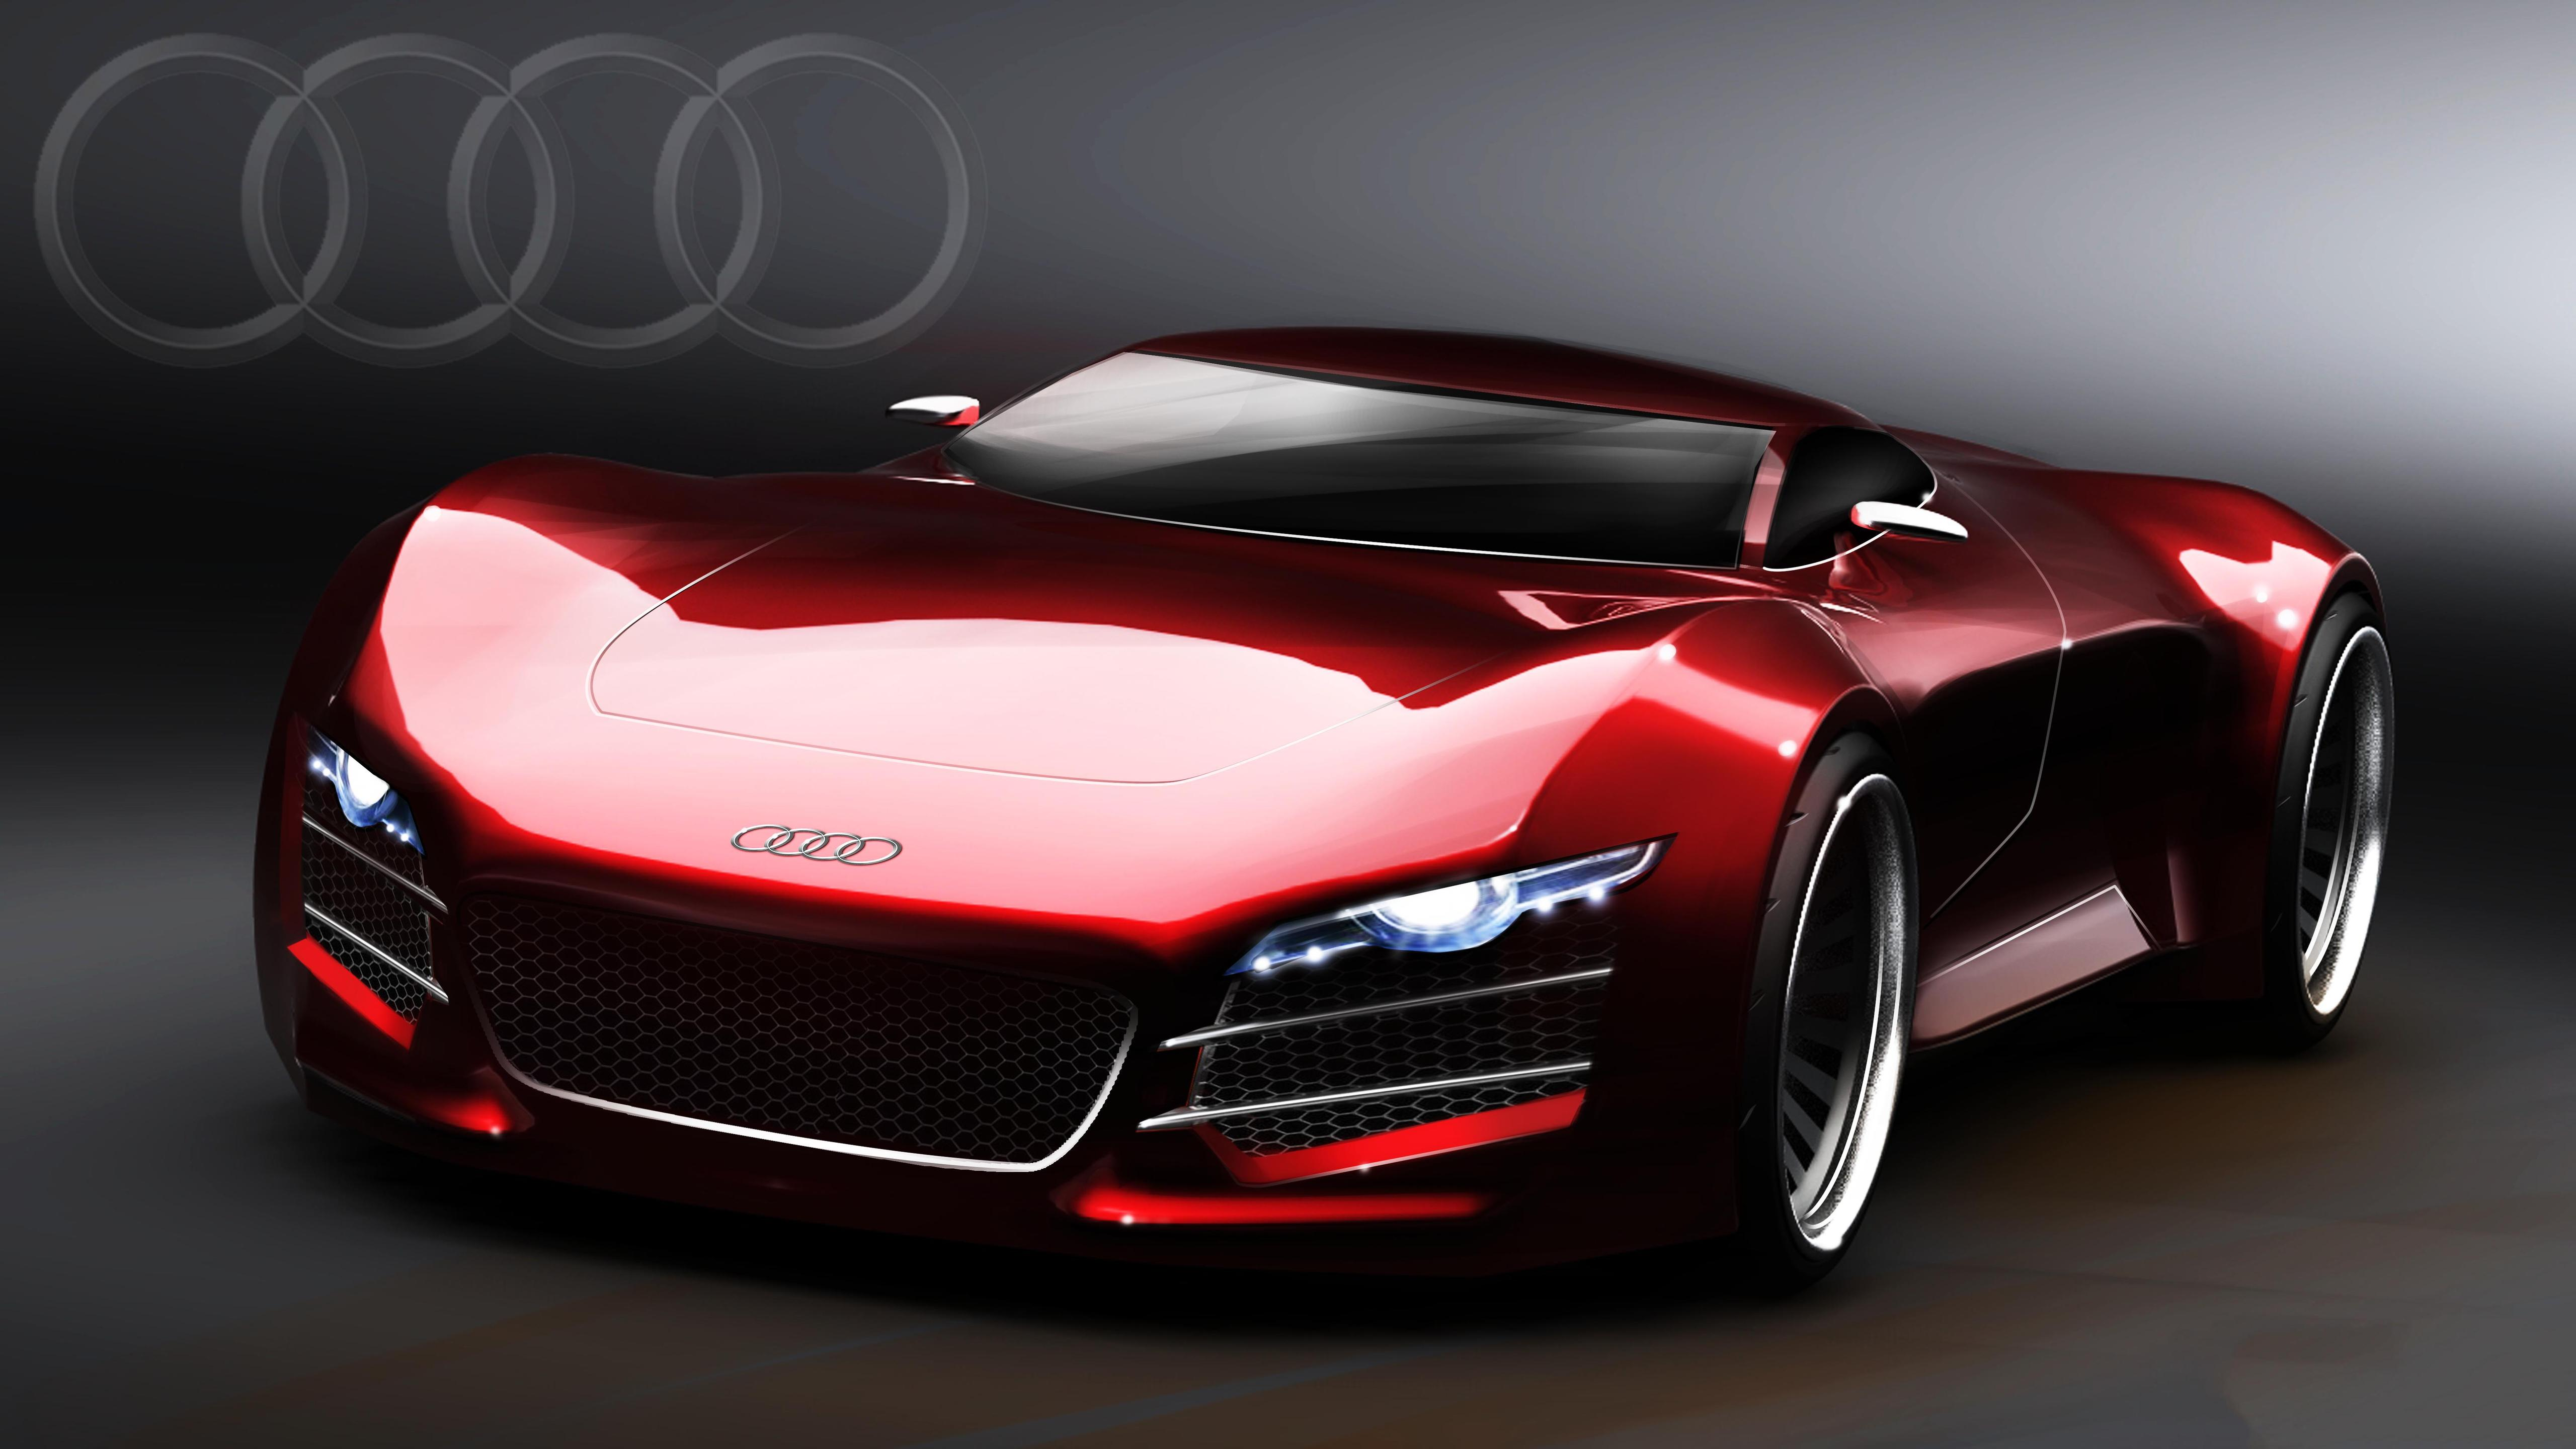 Wallpaper download car - Wallpaper Download Car 12